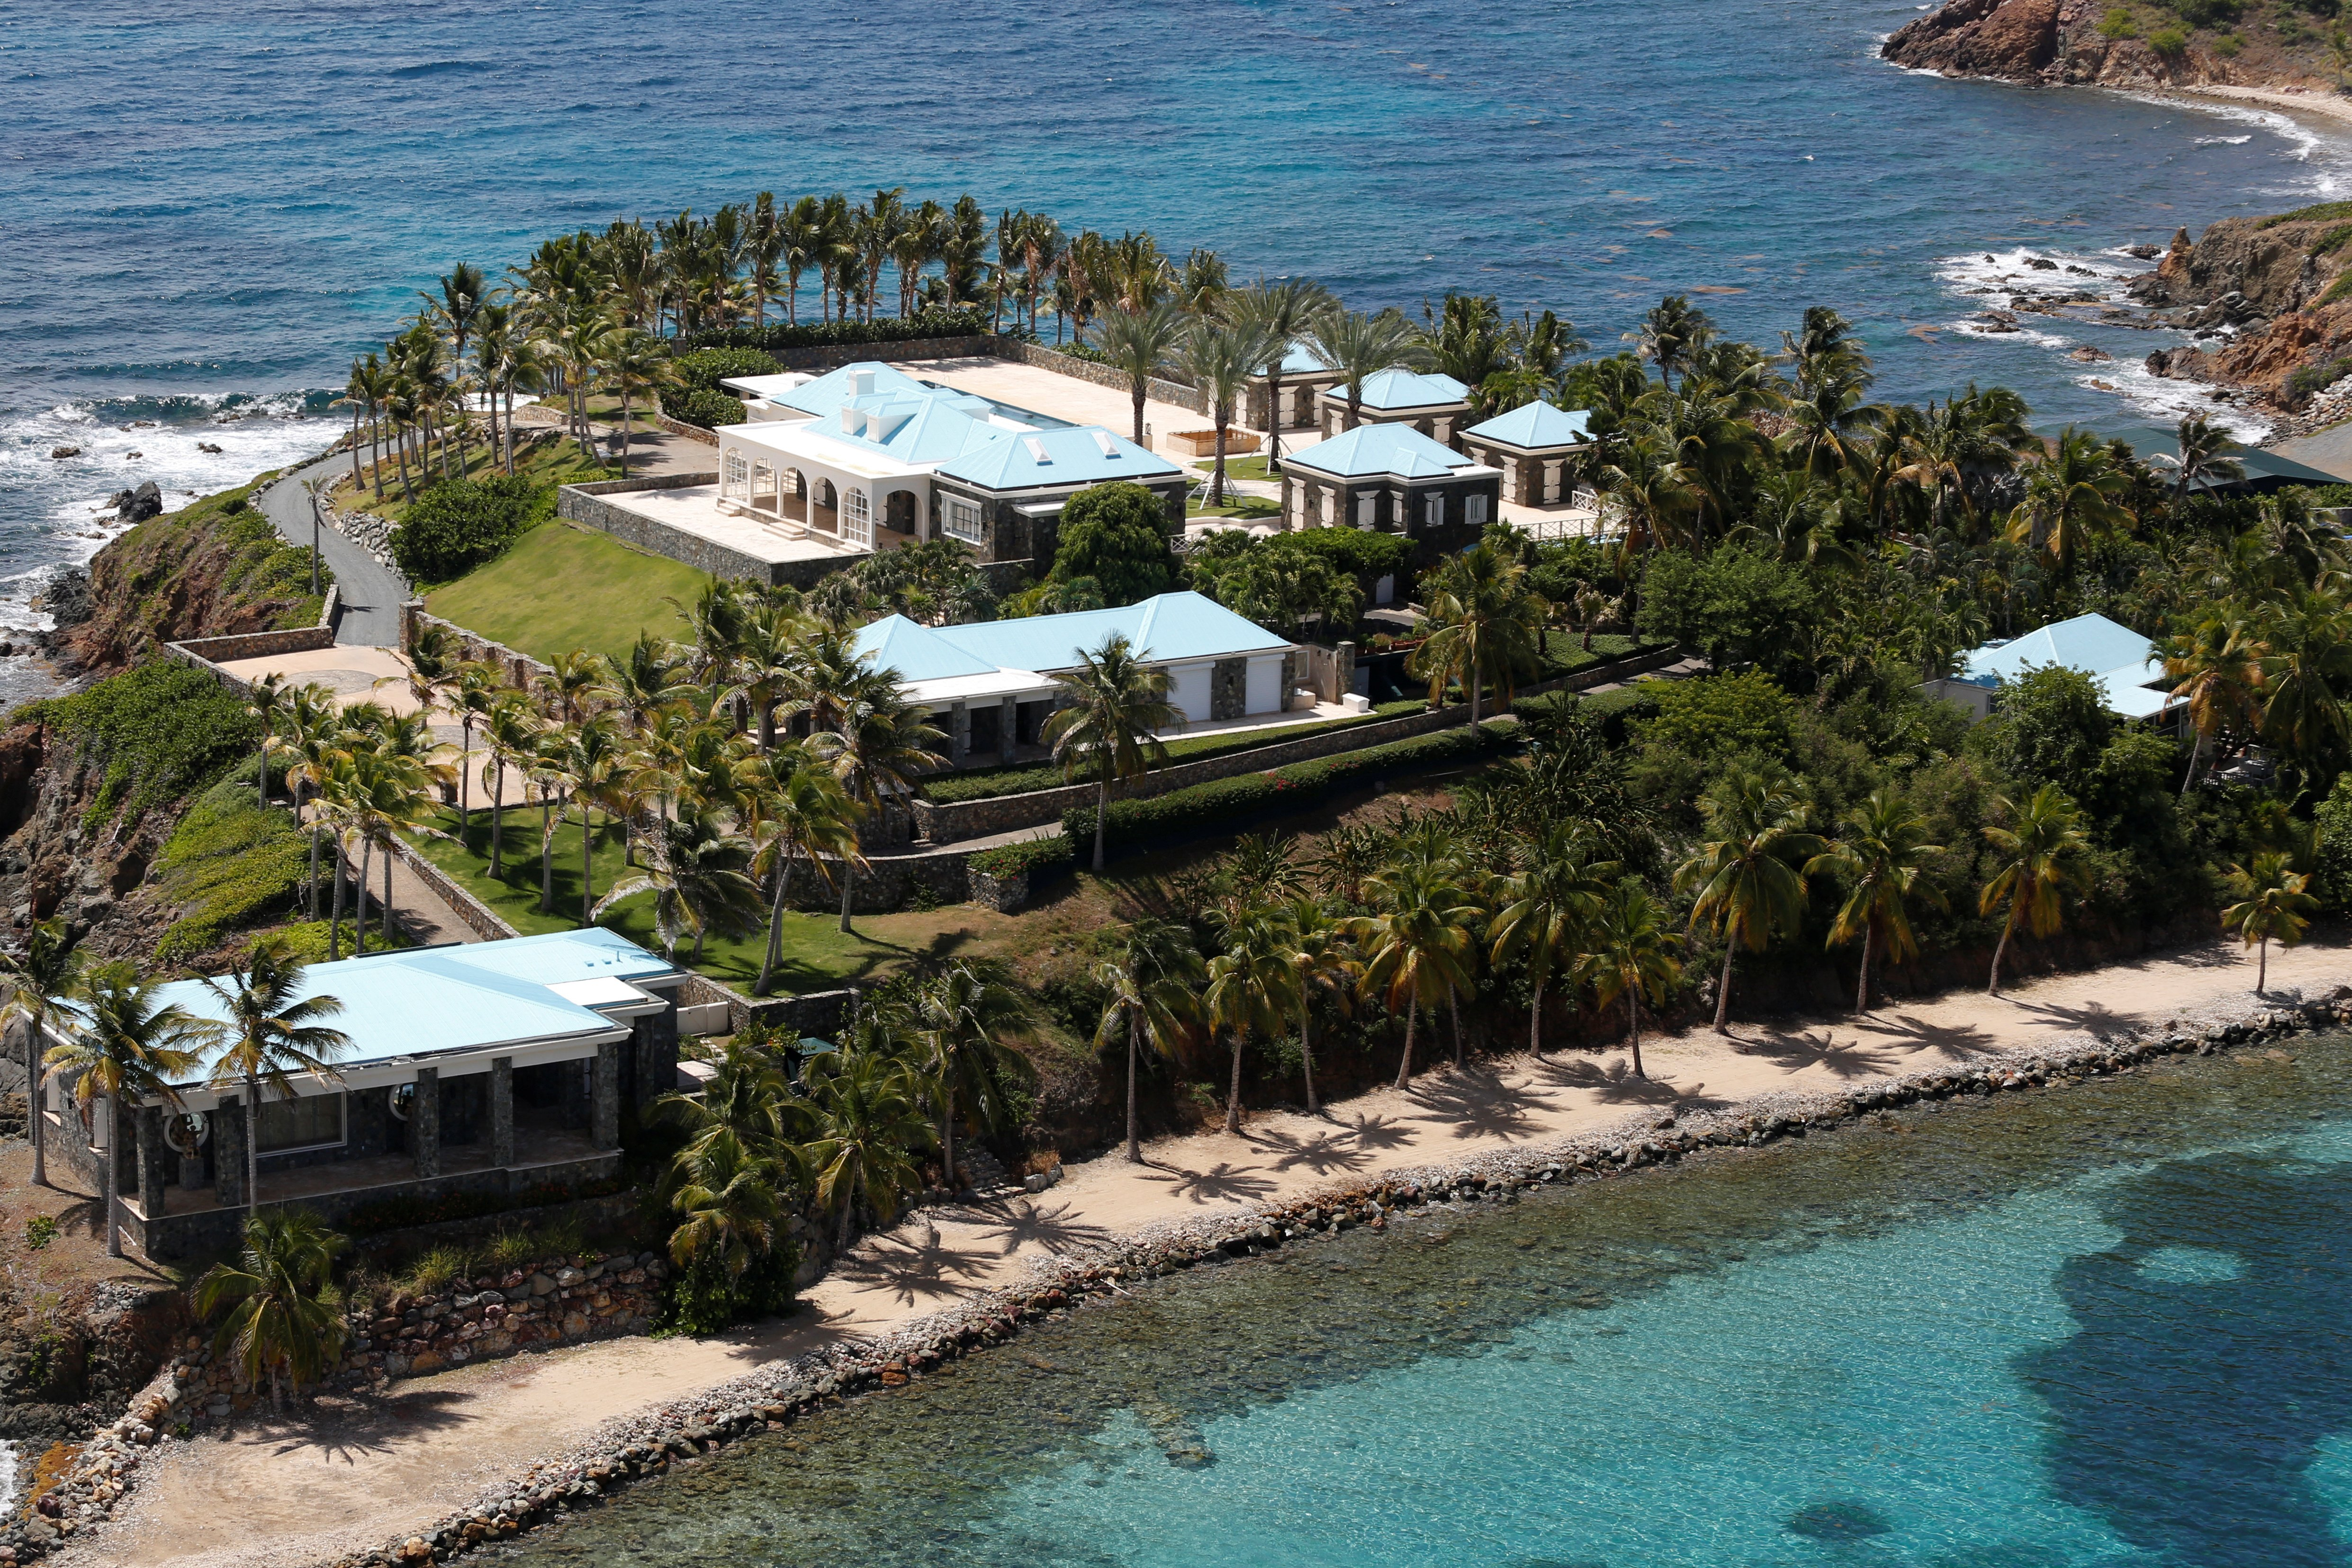 Facilities at Little St. James Island, one of the properties of financier Jeffrey Epstein, are seen in an aerial view, near Charlotte Amalie, St. Thomas, U.S. Virgin Islands July 21, 2019. (REUTERS/Marco Bello)